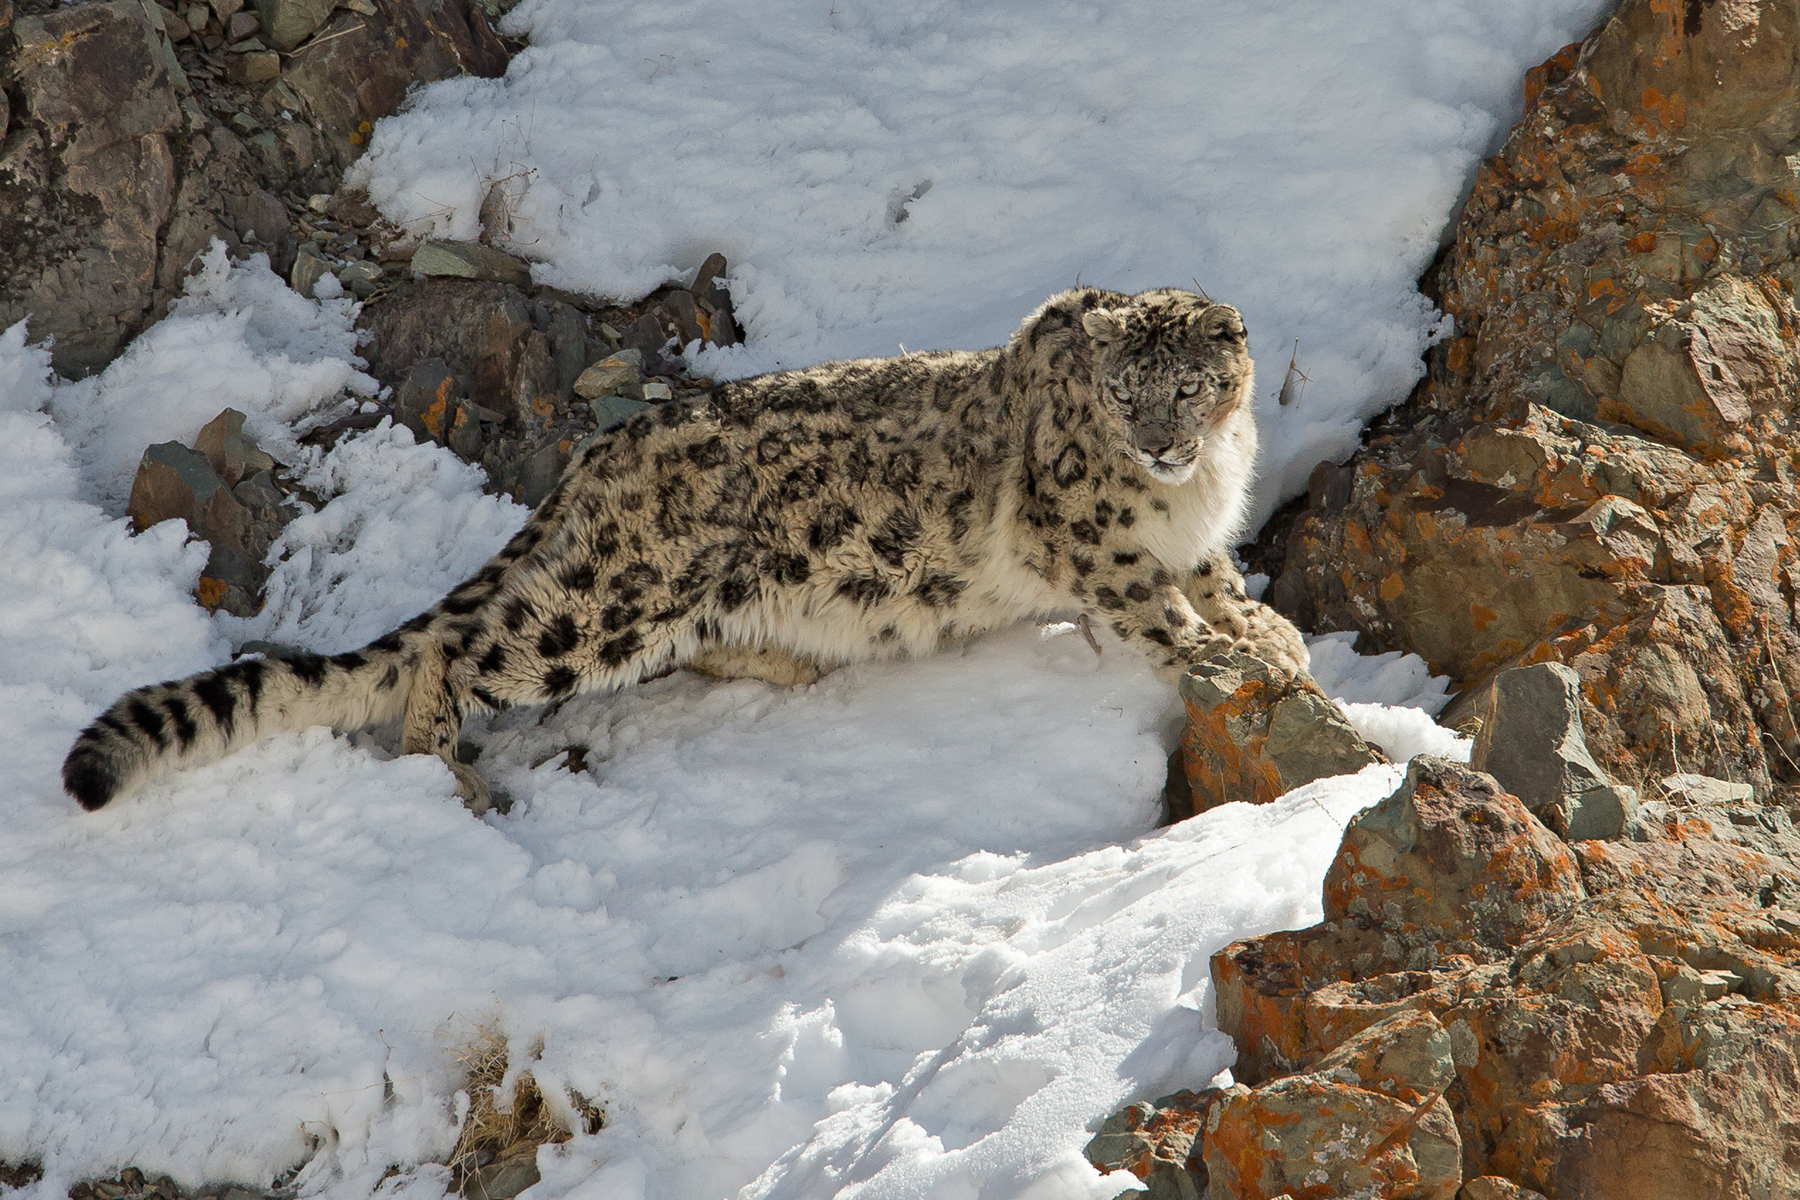 Snow Leopard in Ladakh (image by Mike Watson)